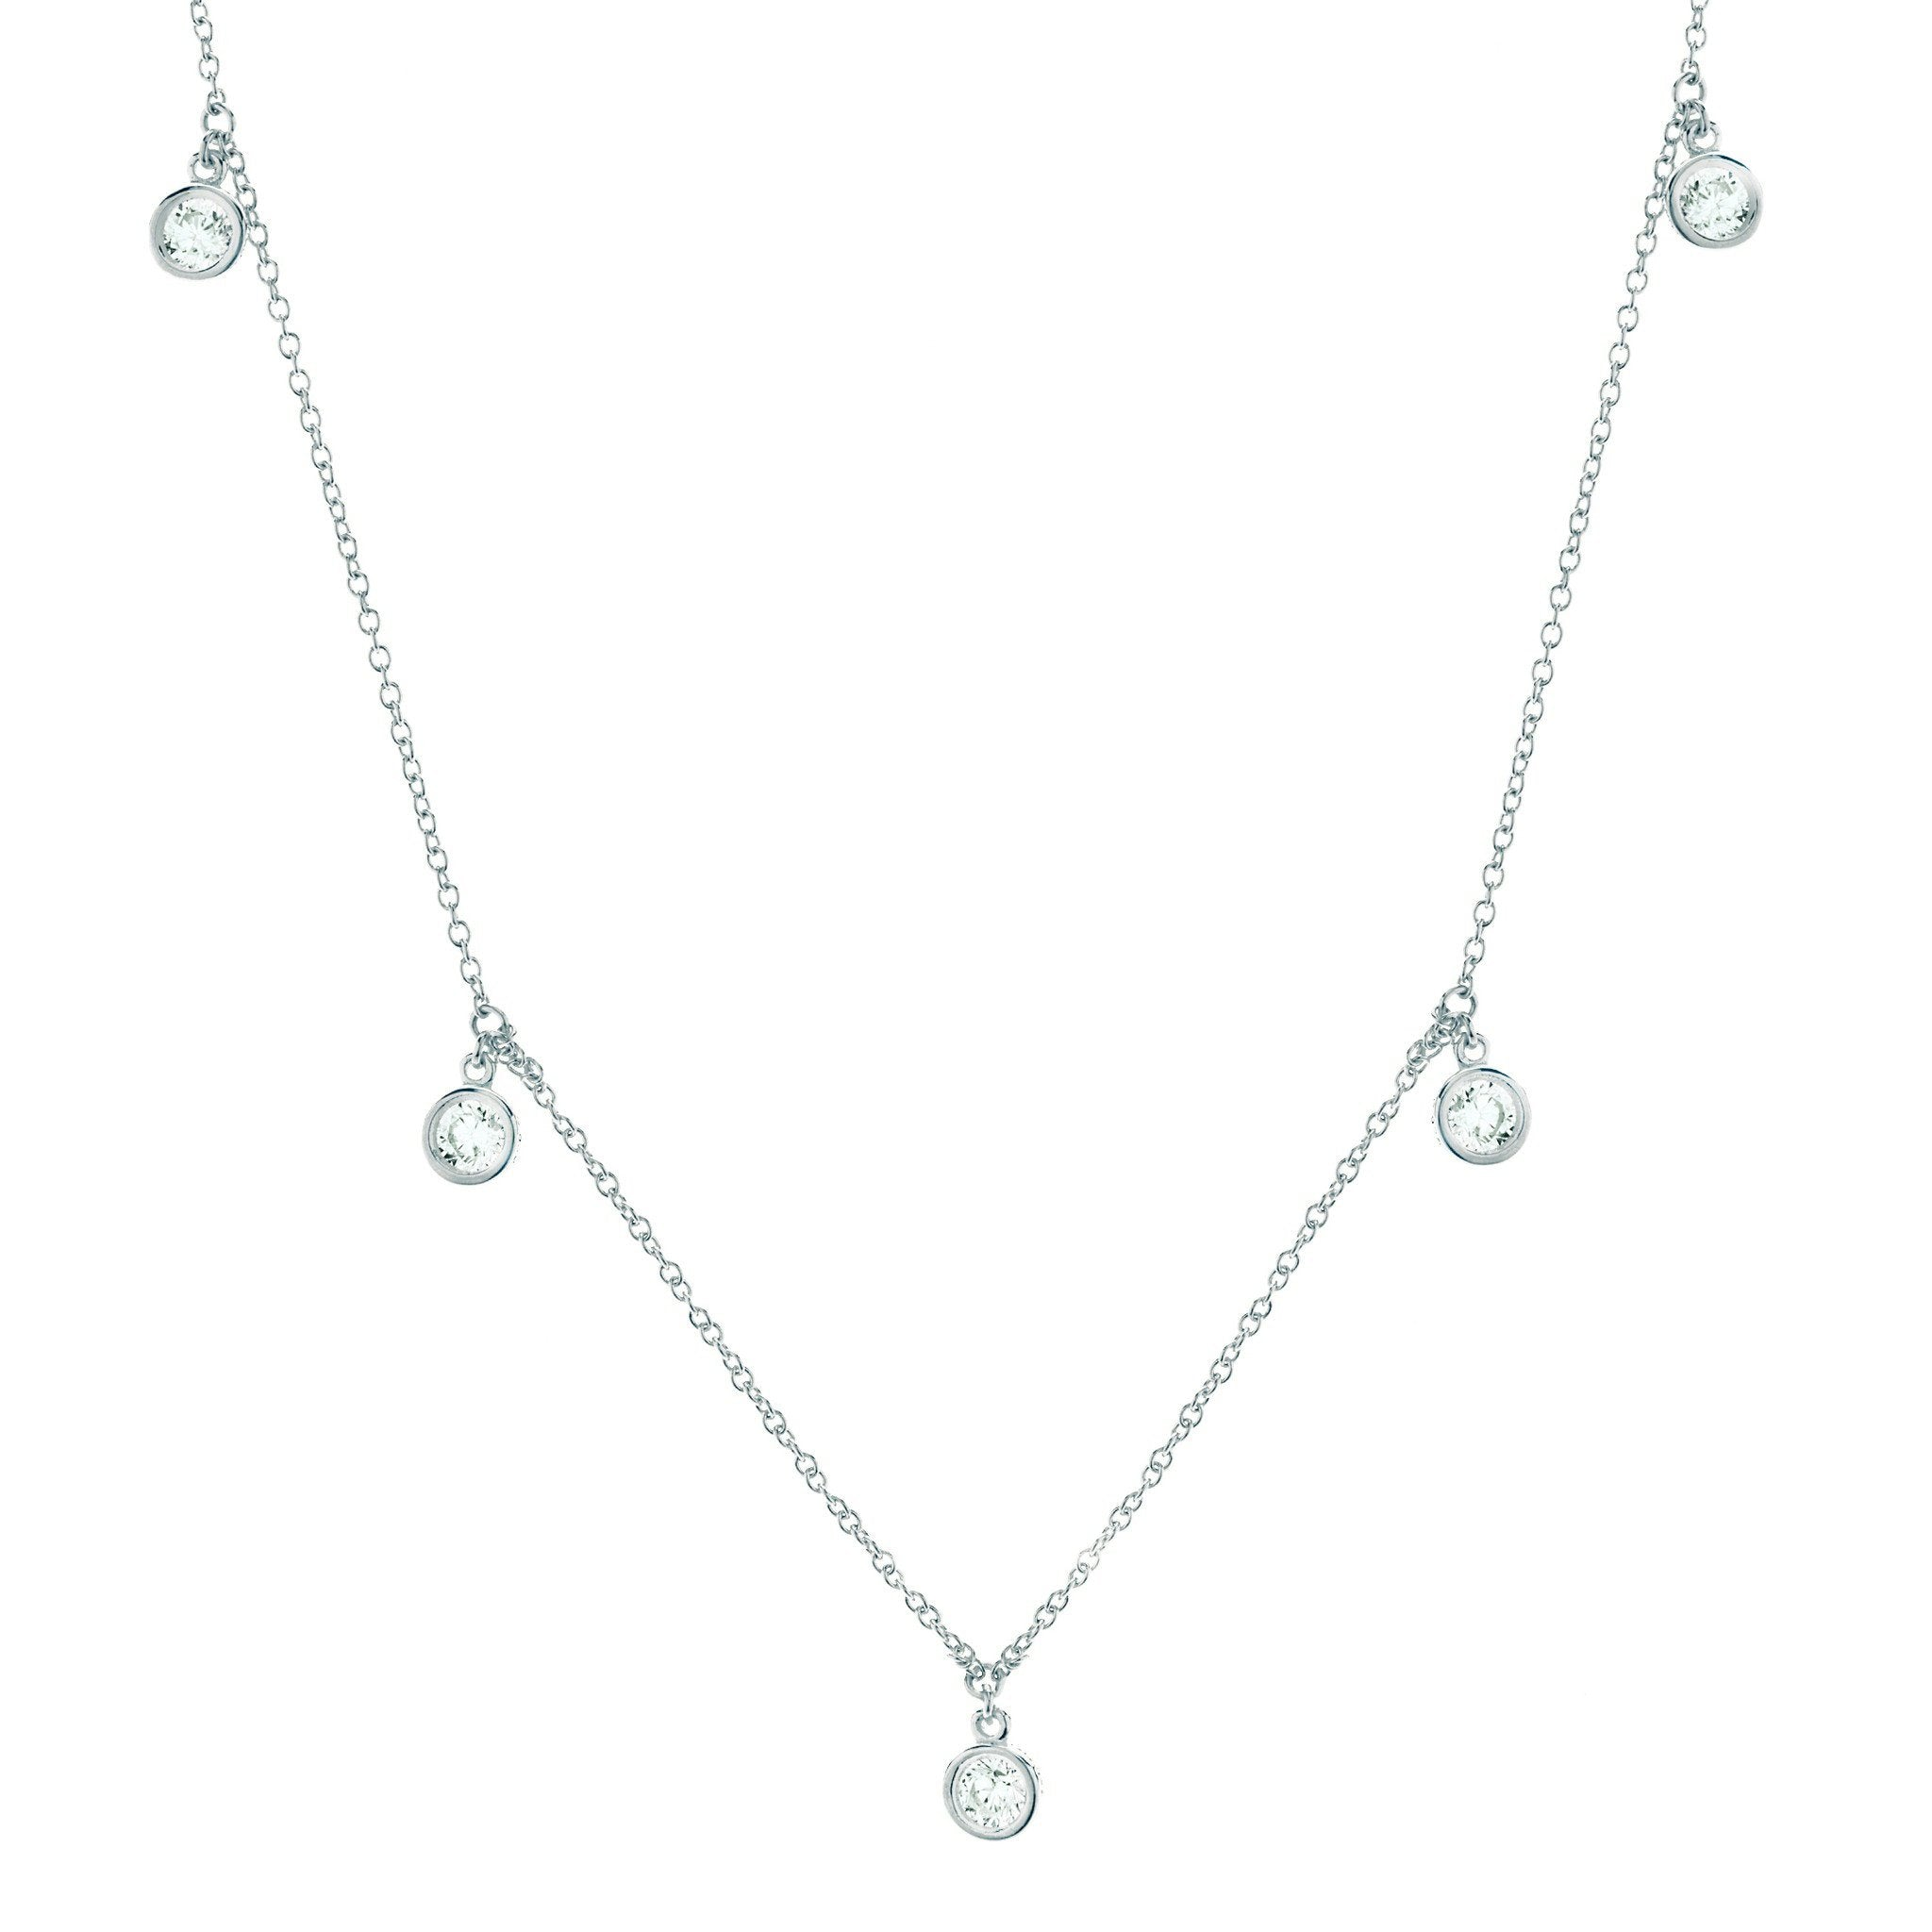 choker tennis necklace carat diamond at for j jewelry org necklaces sale id platinum